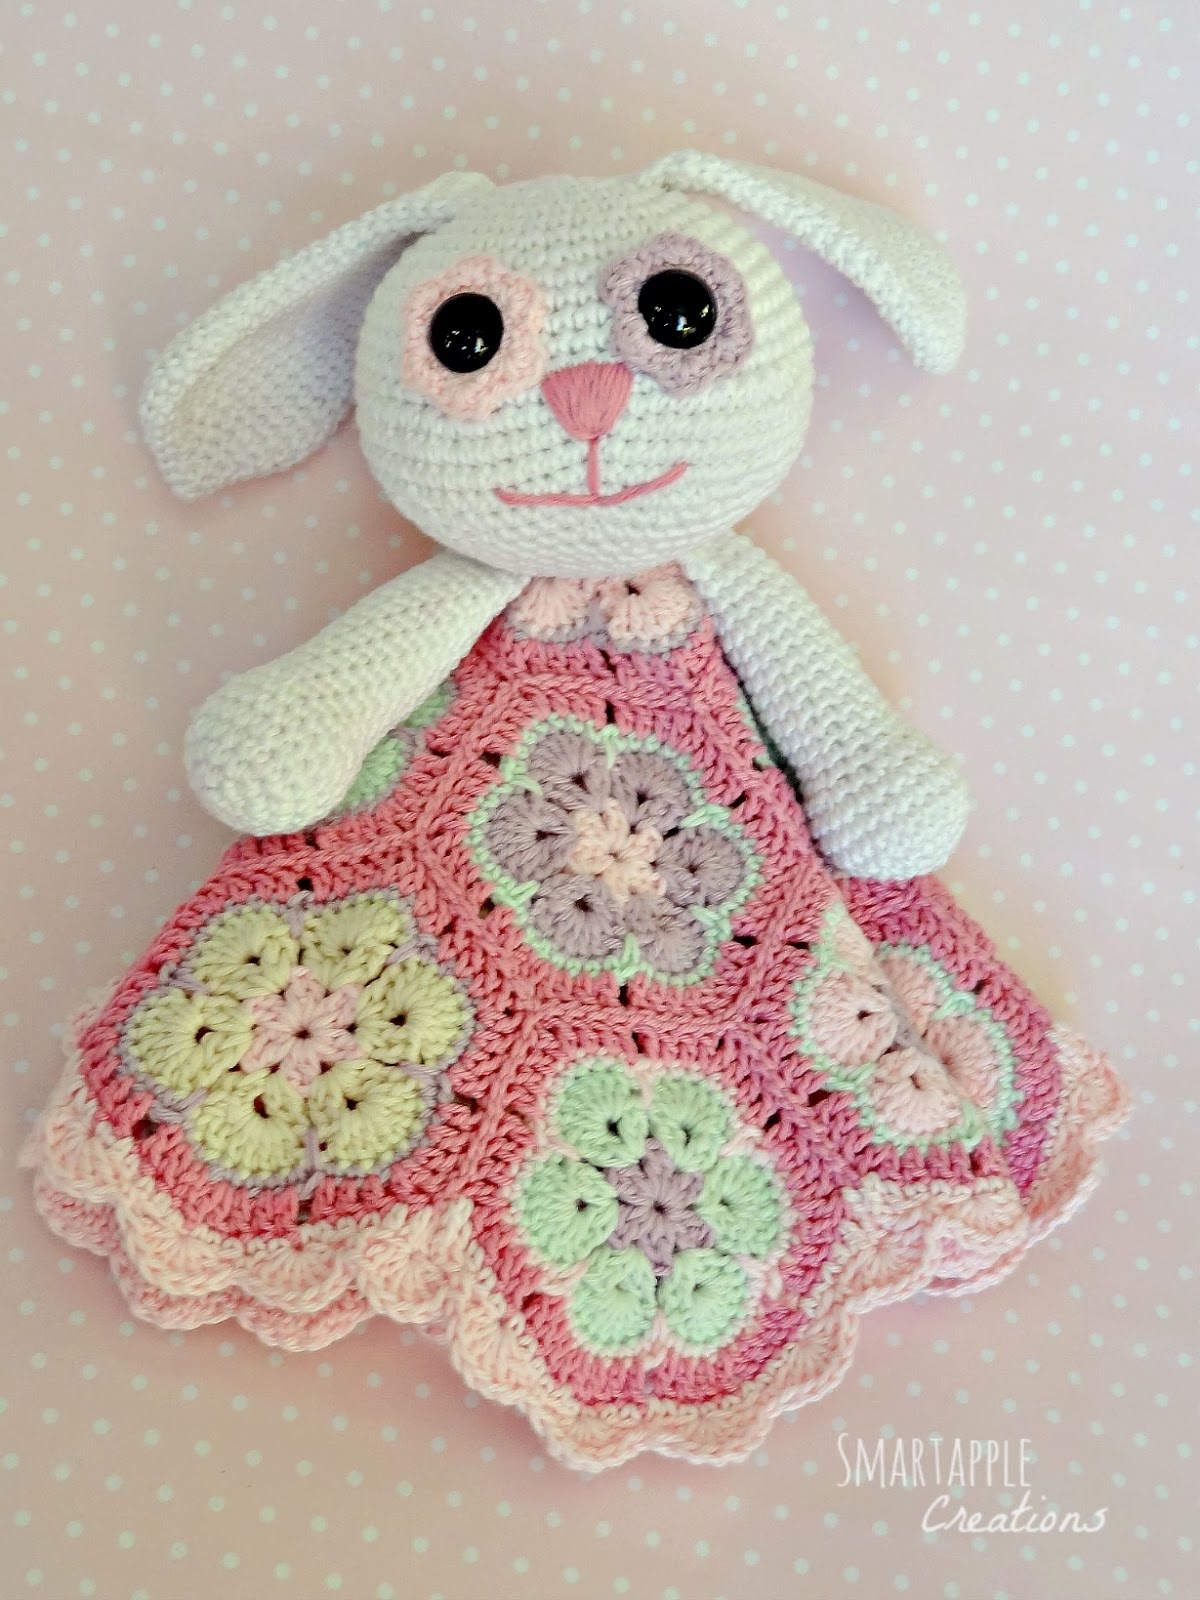 Amigurumi Crochet Flowers : Smartapple Creations - amigurumi and crochet: Crochet ...